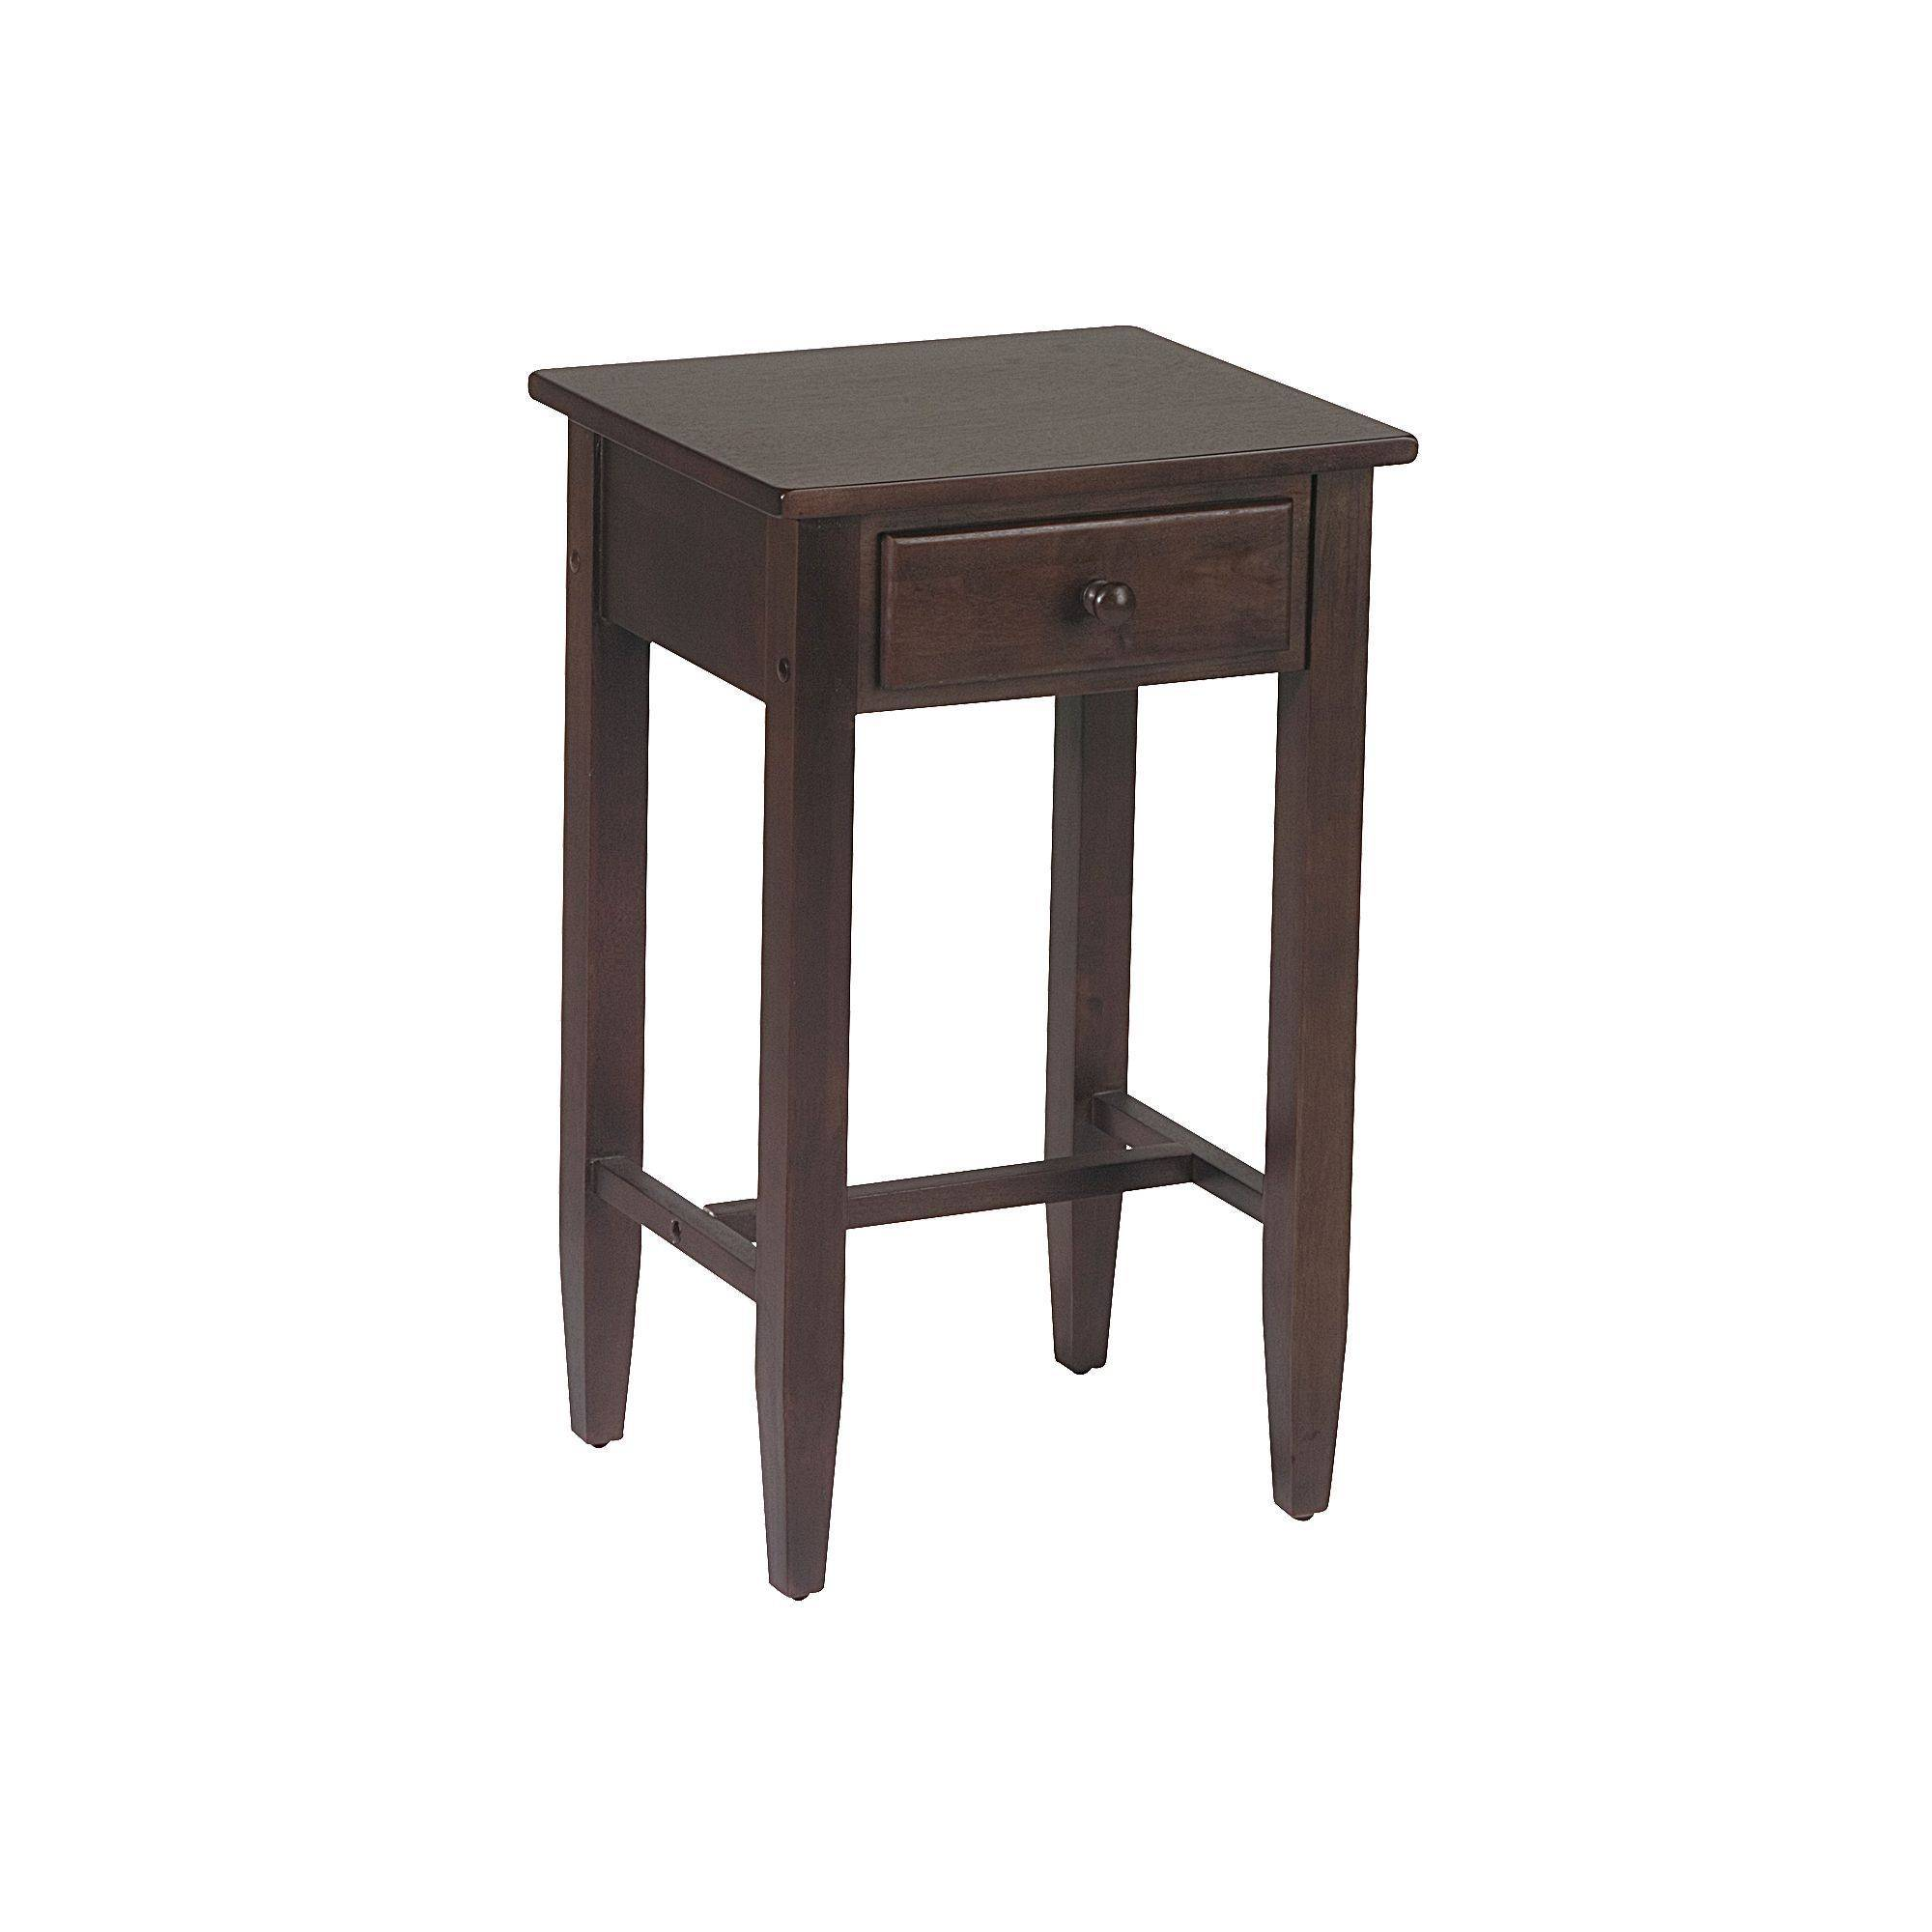 home design espresso end table besides stara products telephone accent winsome wood beechwood green chair with lamp attached ikea storage bins bedside shades target kids furniture